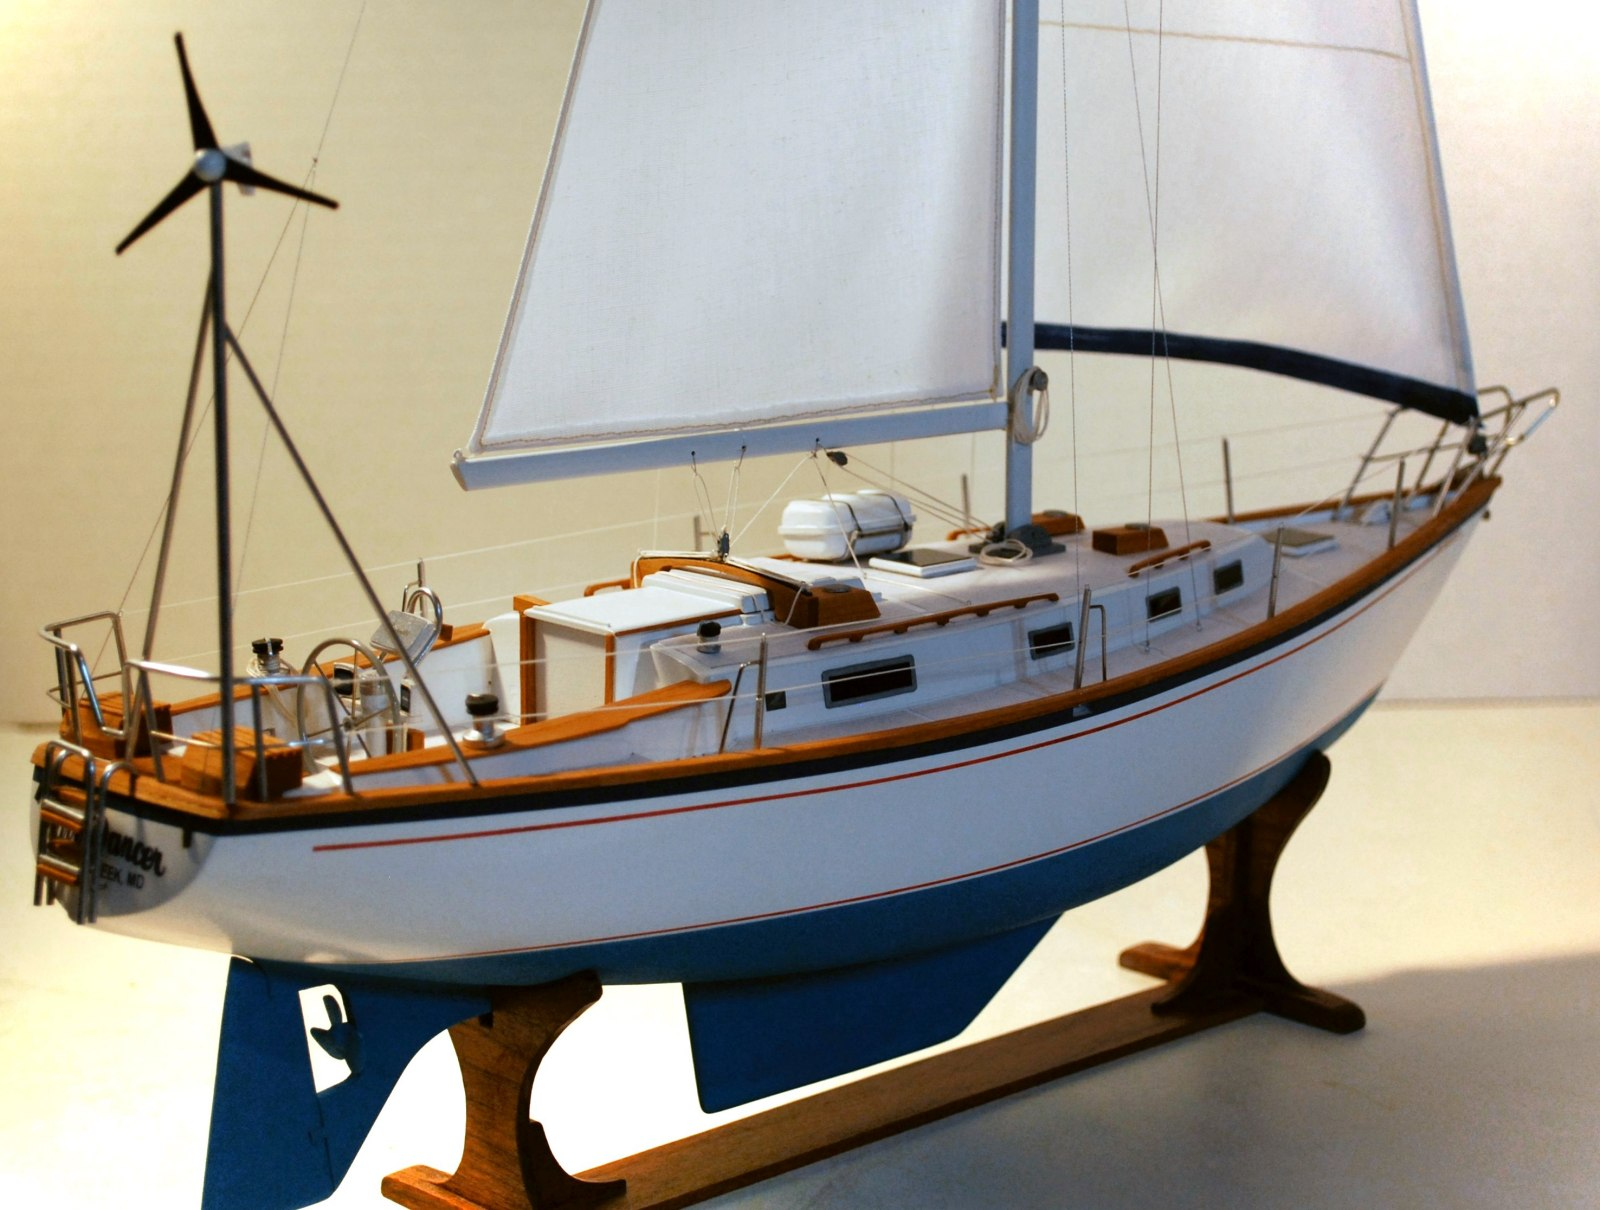 Fine Yacht Models from The Art of Age of Sail - Page 2